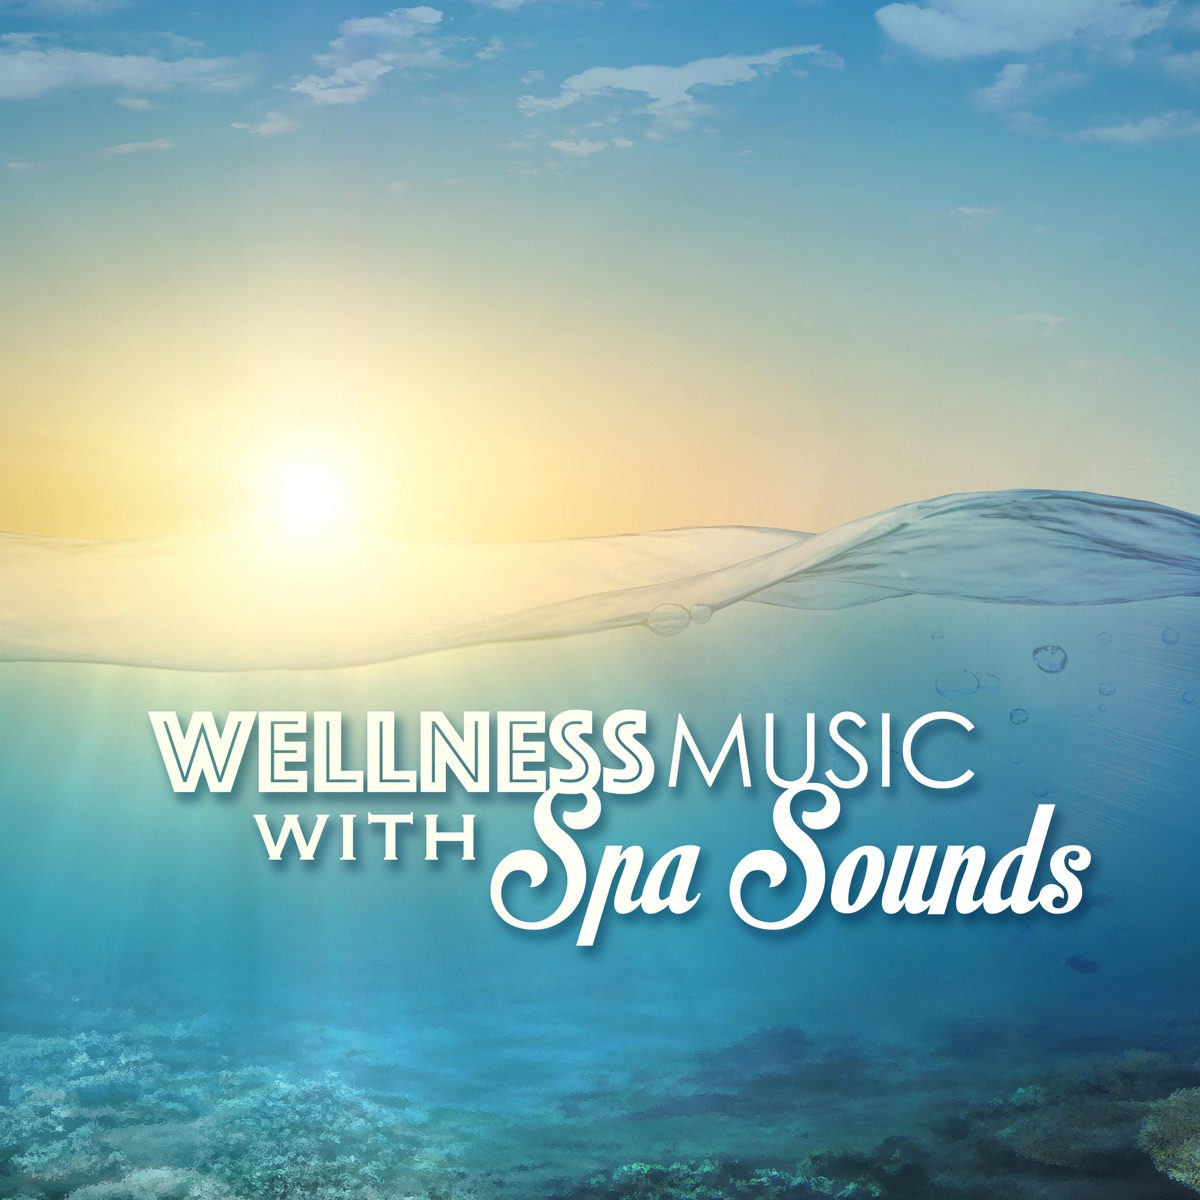 Wellness Music with Nature Sounds - Beauty Center & Spa Background